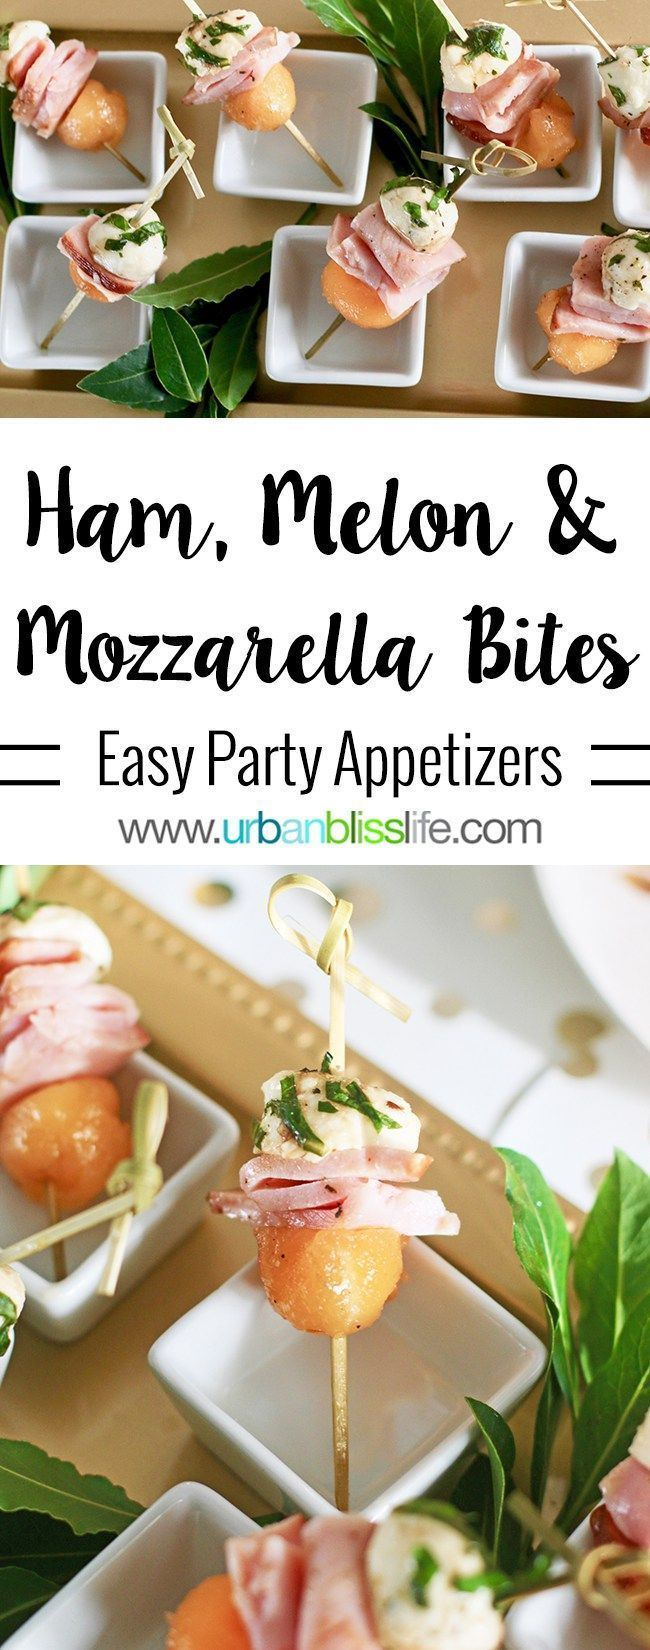 Ham, Melon, Mozarella Bites party appetizer is easy and elegant - perfect for any holiday party! AD Get the recipe: http://www.urbanblisslife.com/ham-melon-mozzarella-bites-appetizer-recipe/ #appetizers #snacks #melon #ham